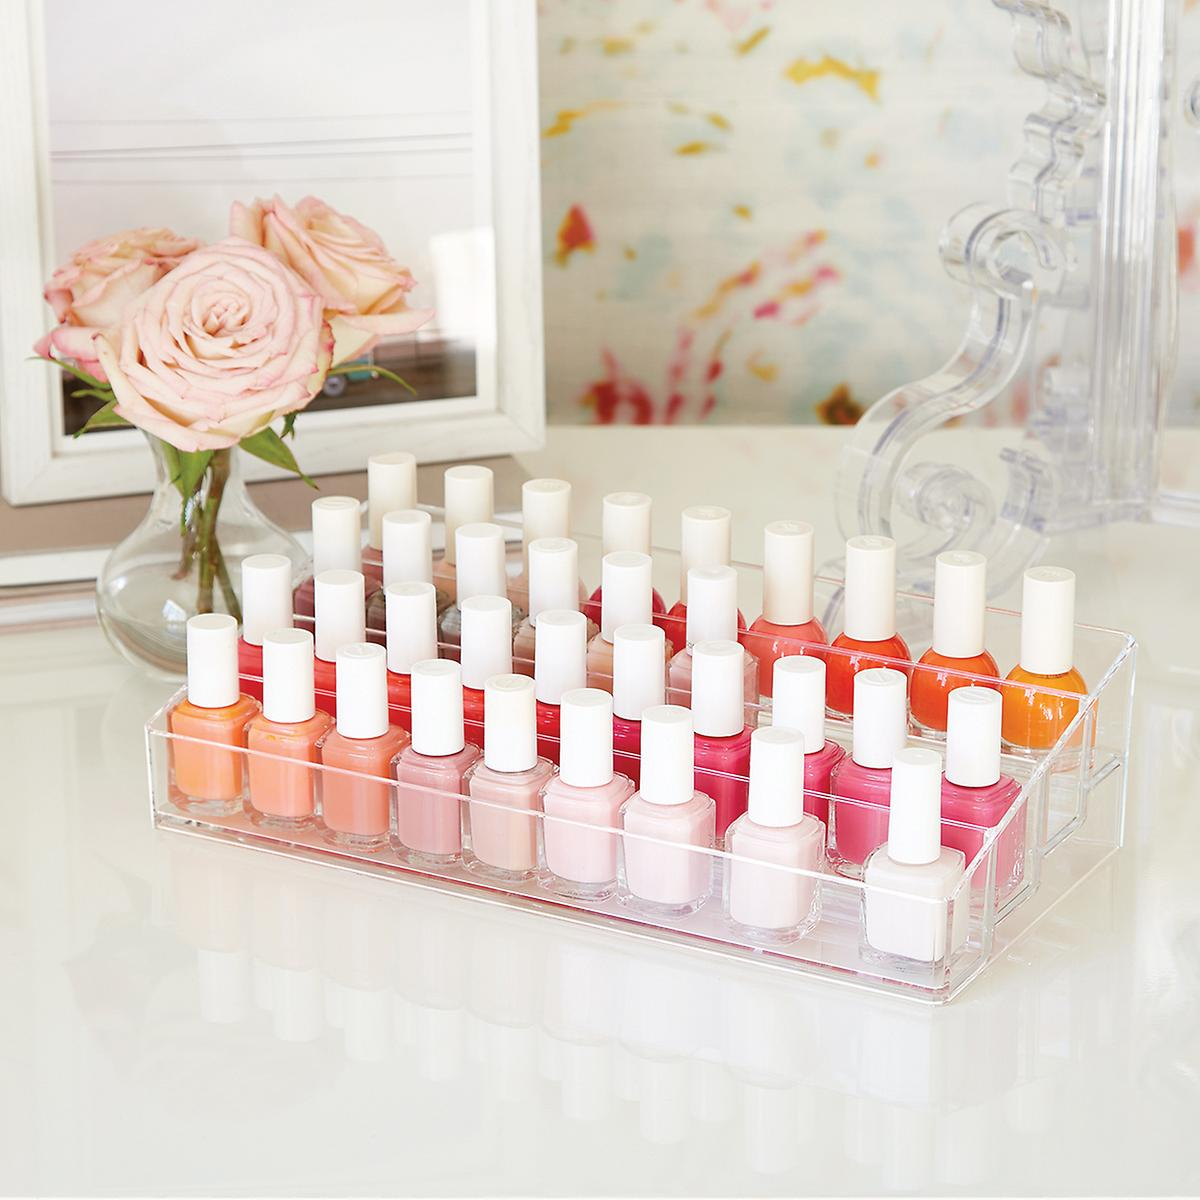 40-Bottle Acrylic Nail Polish Riser | The Container Store